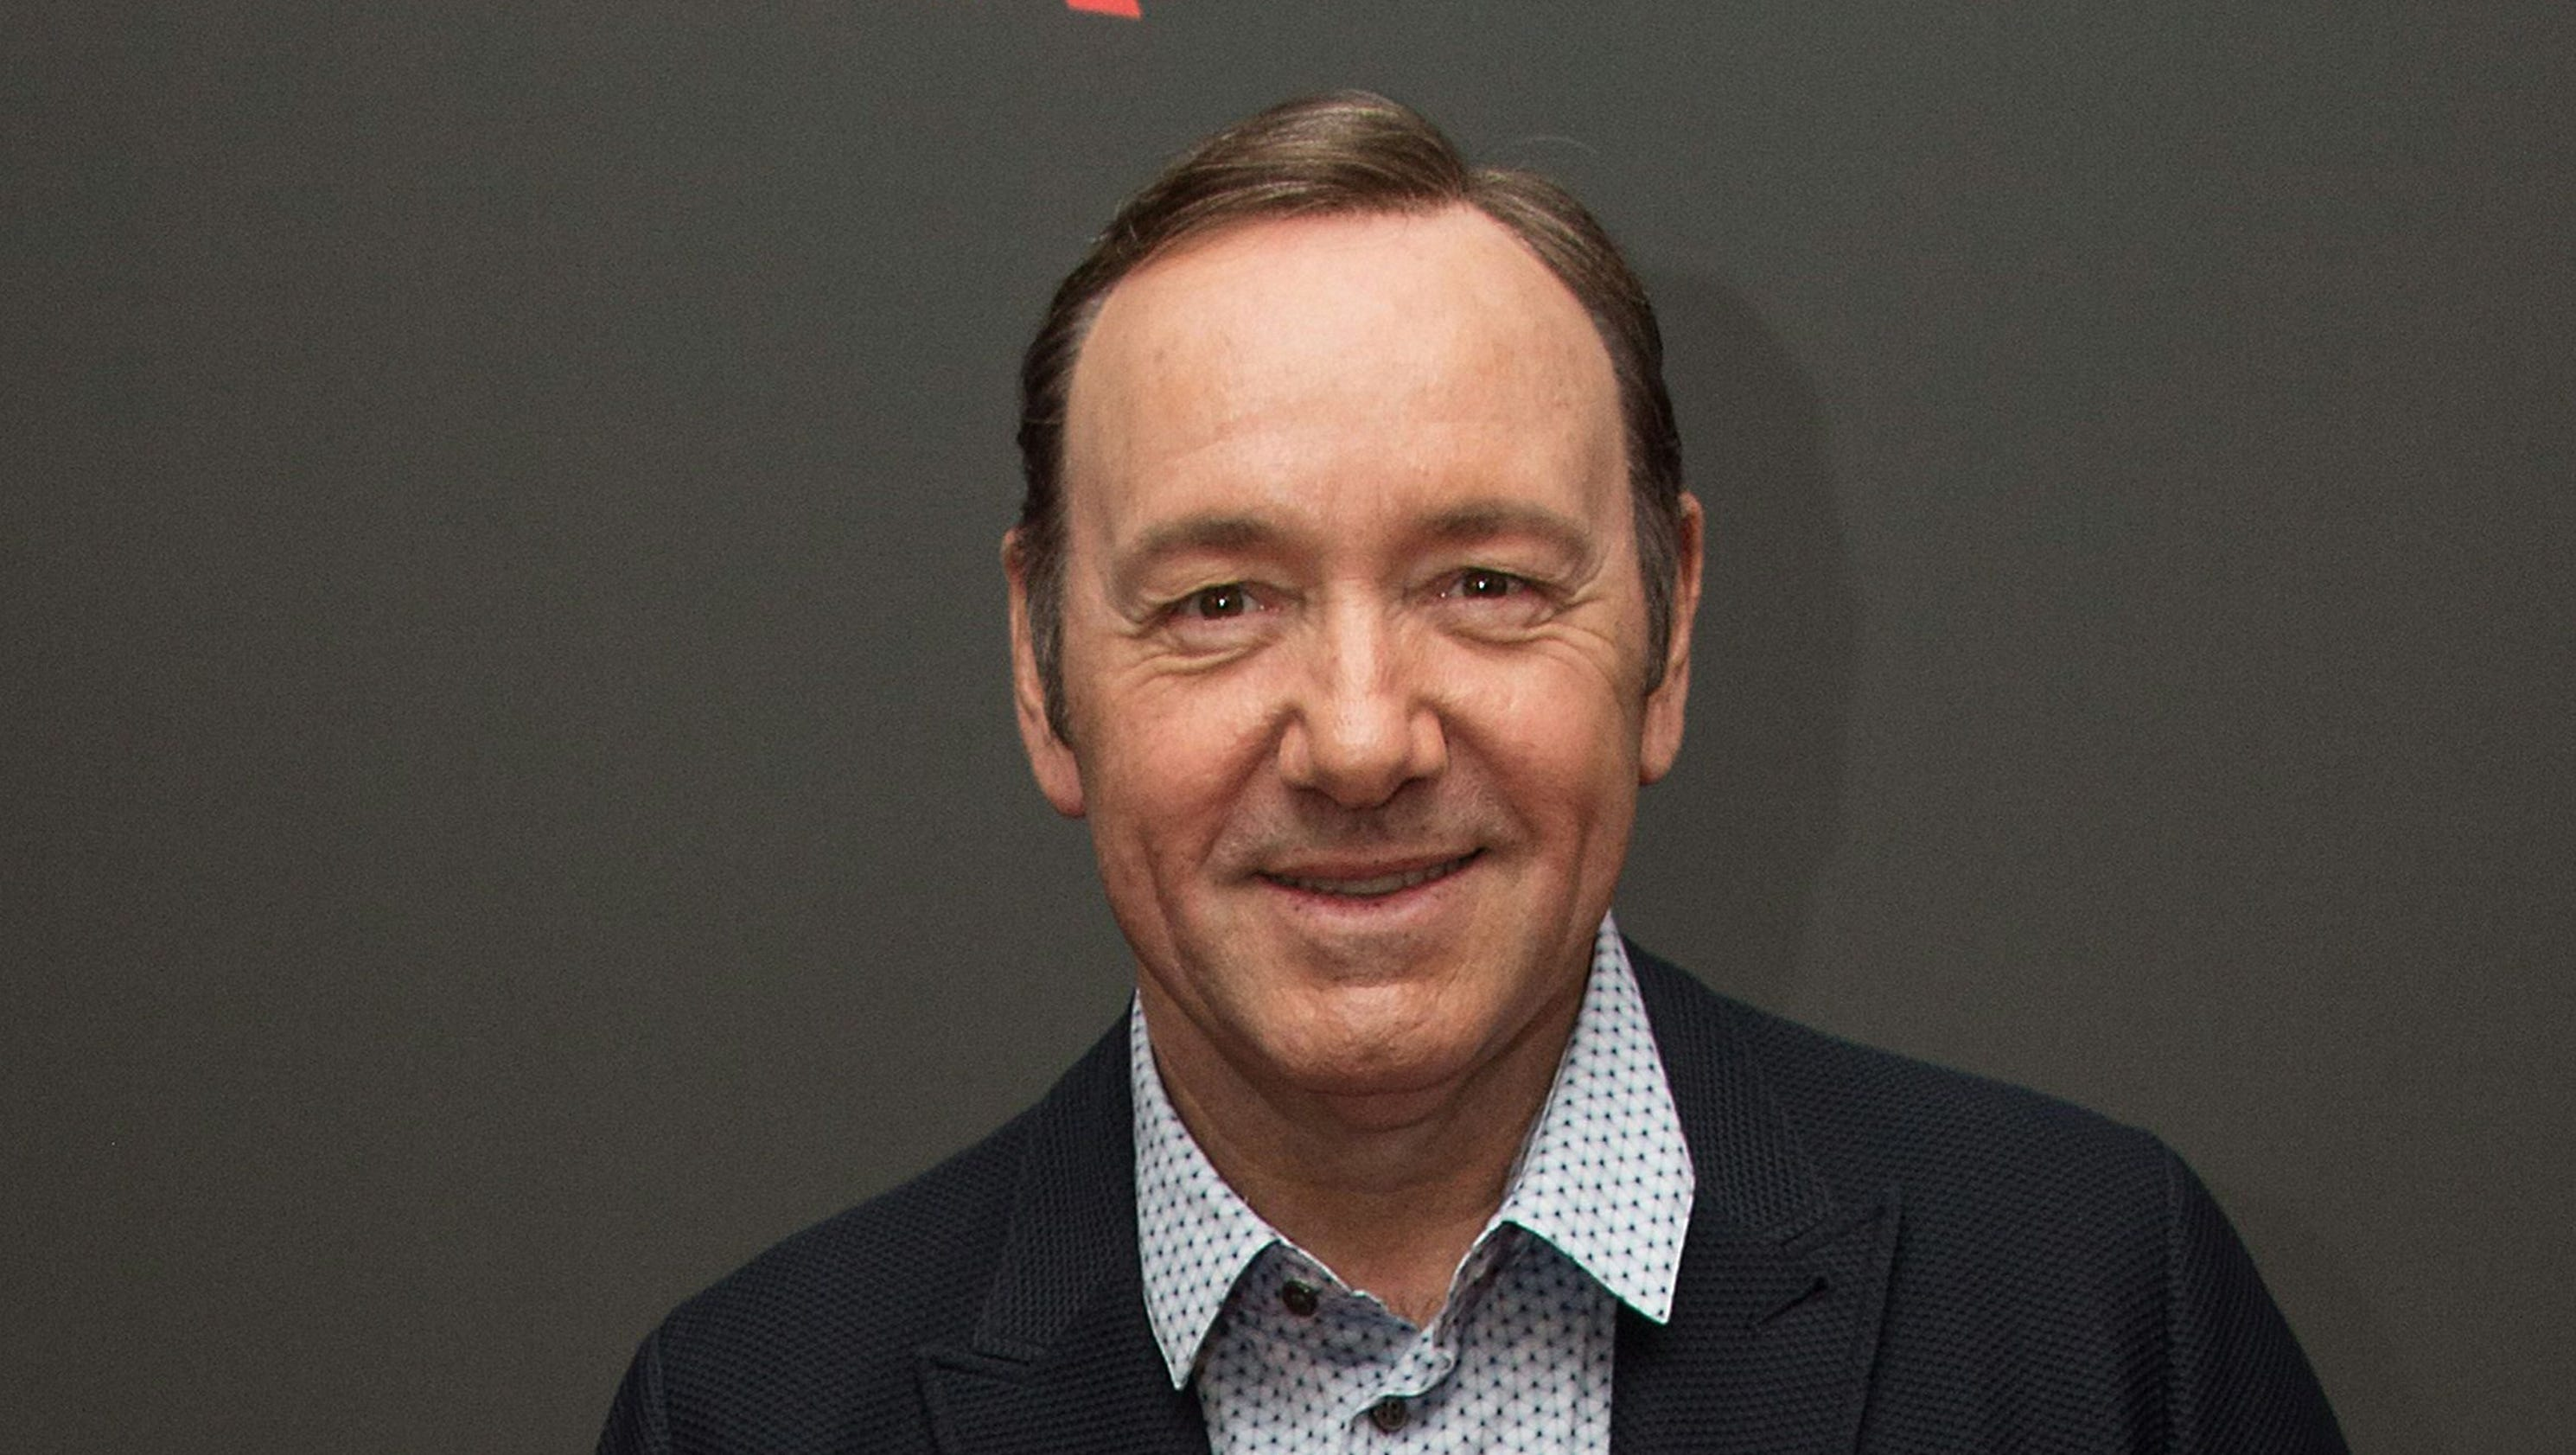 Kevin Spacey: Former TV anchor Heather Unruh says Spacey assaulted her son in 2016